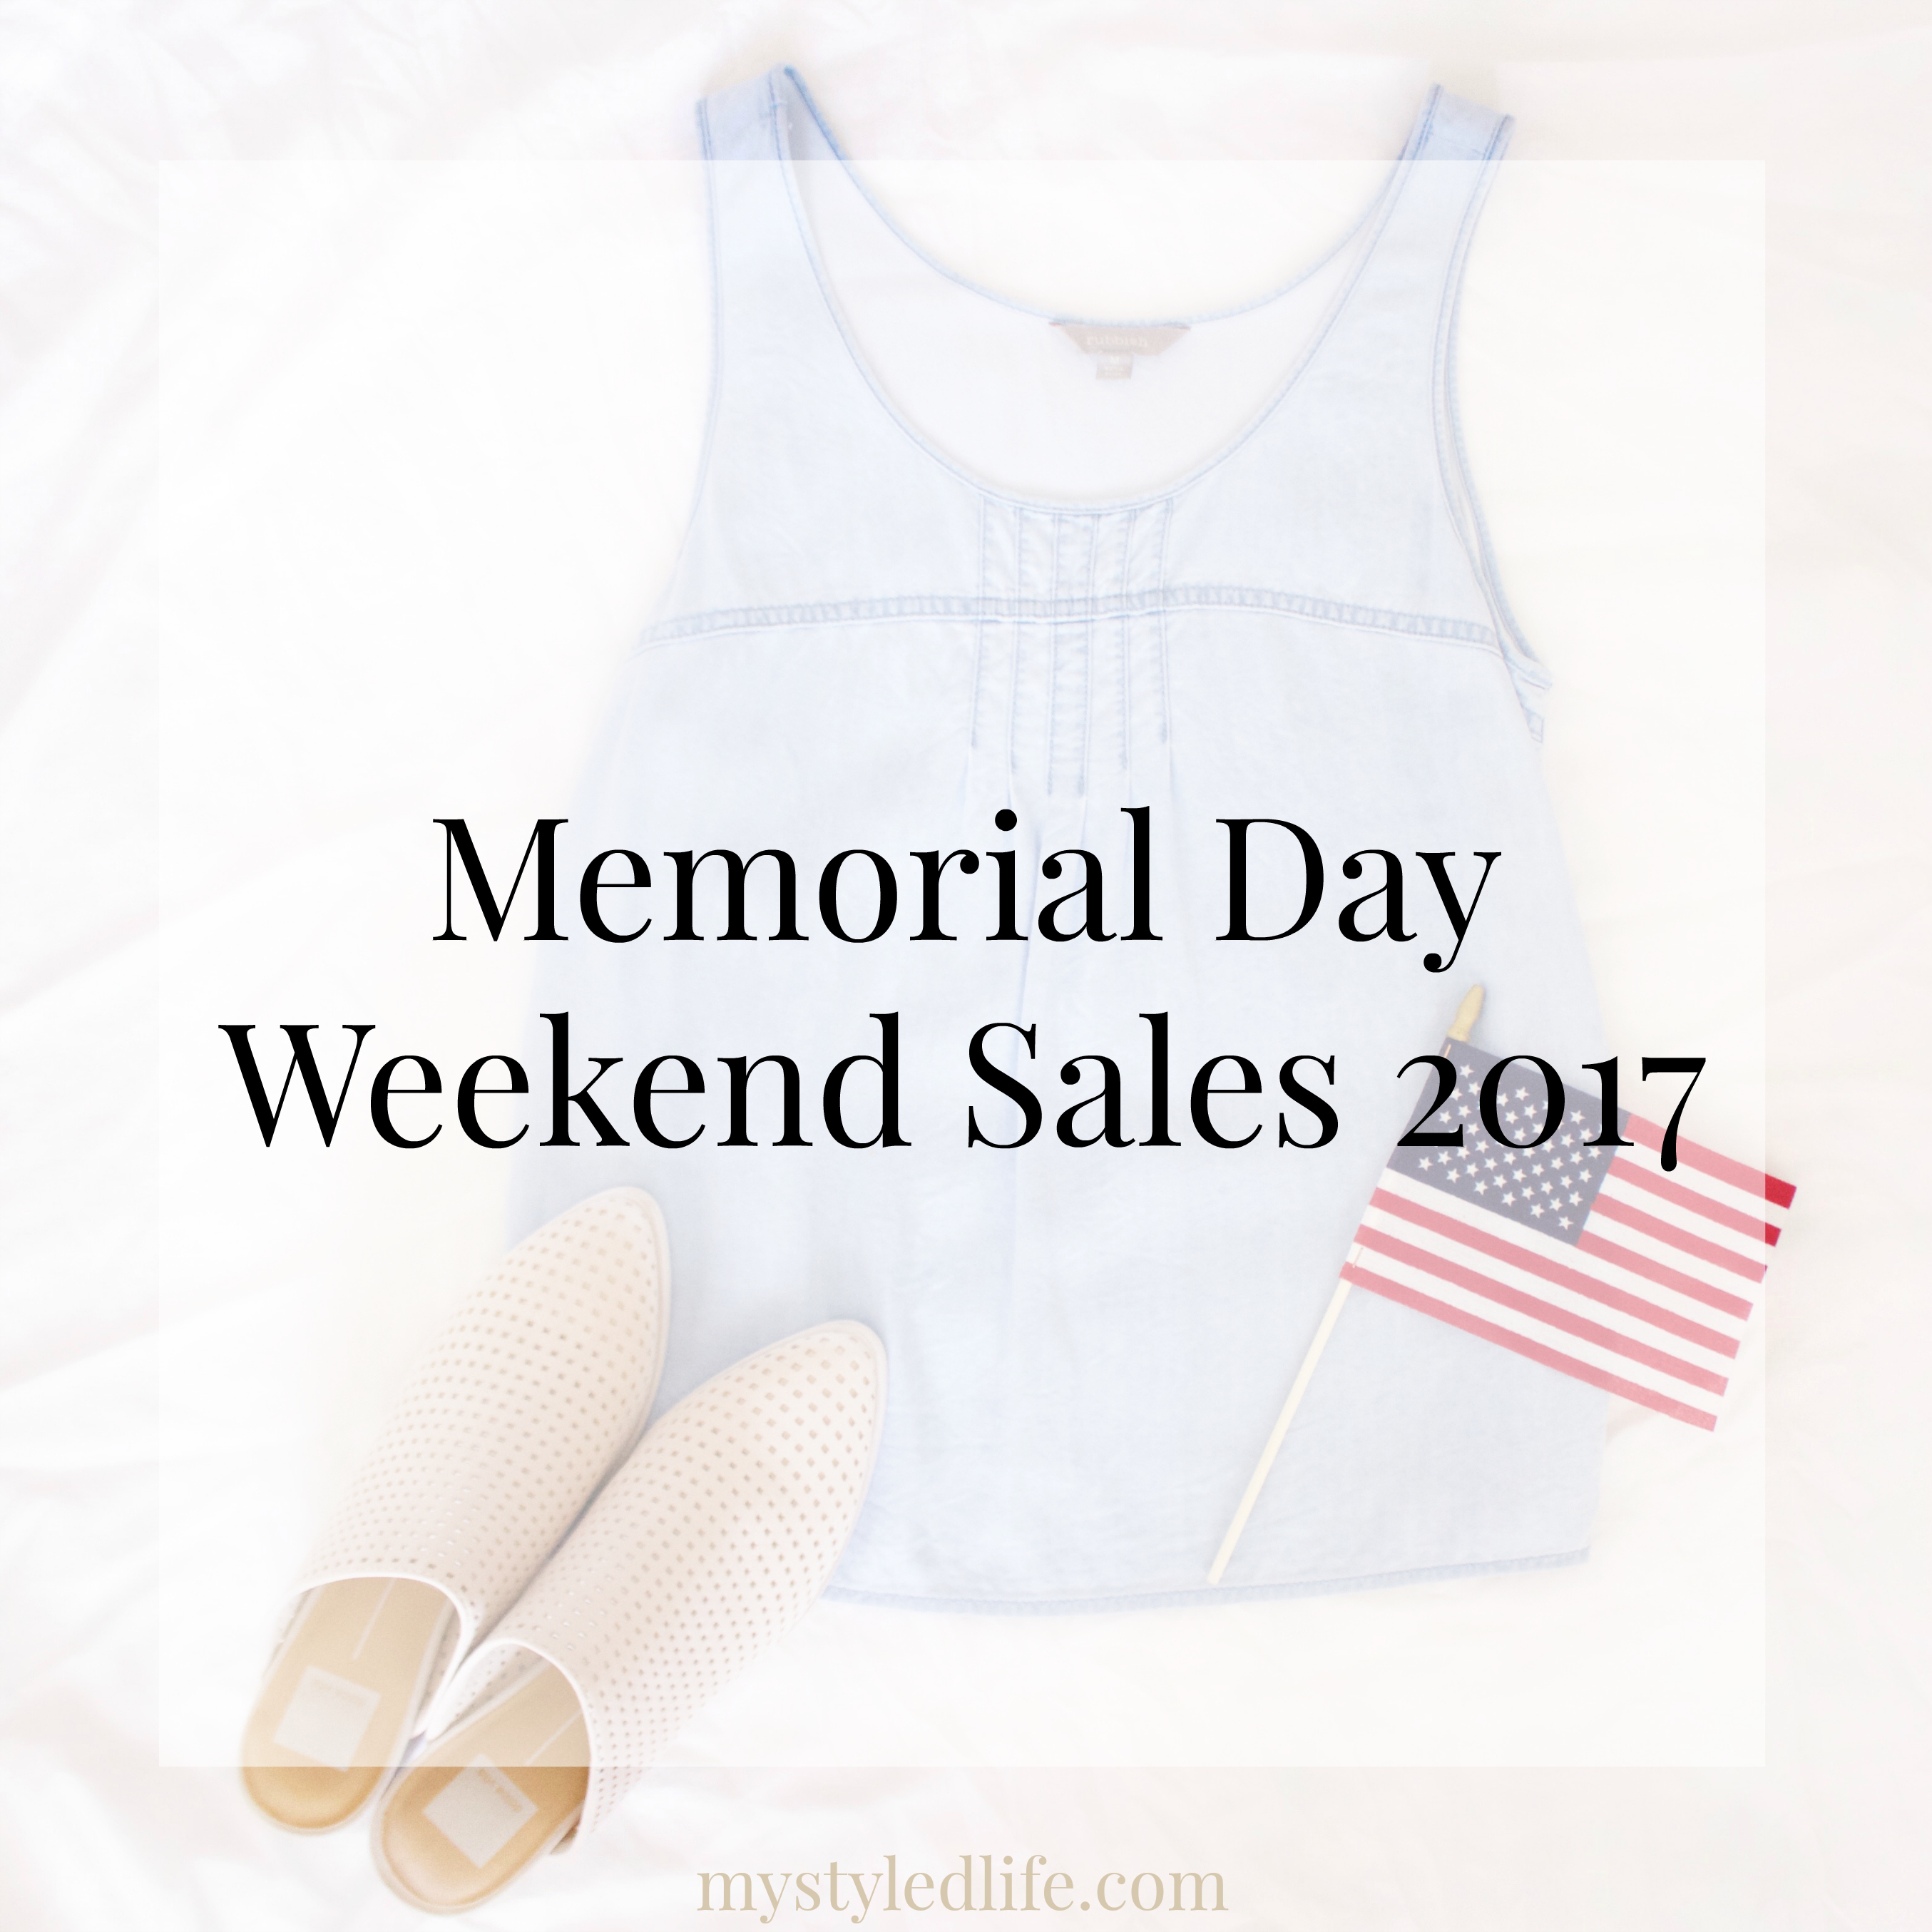 Memorial Day Weekend Sales 2017